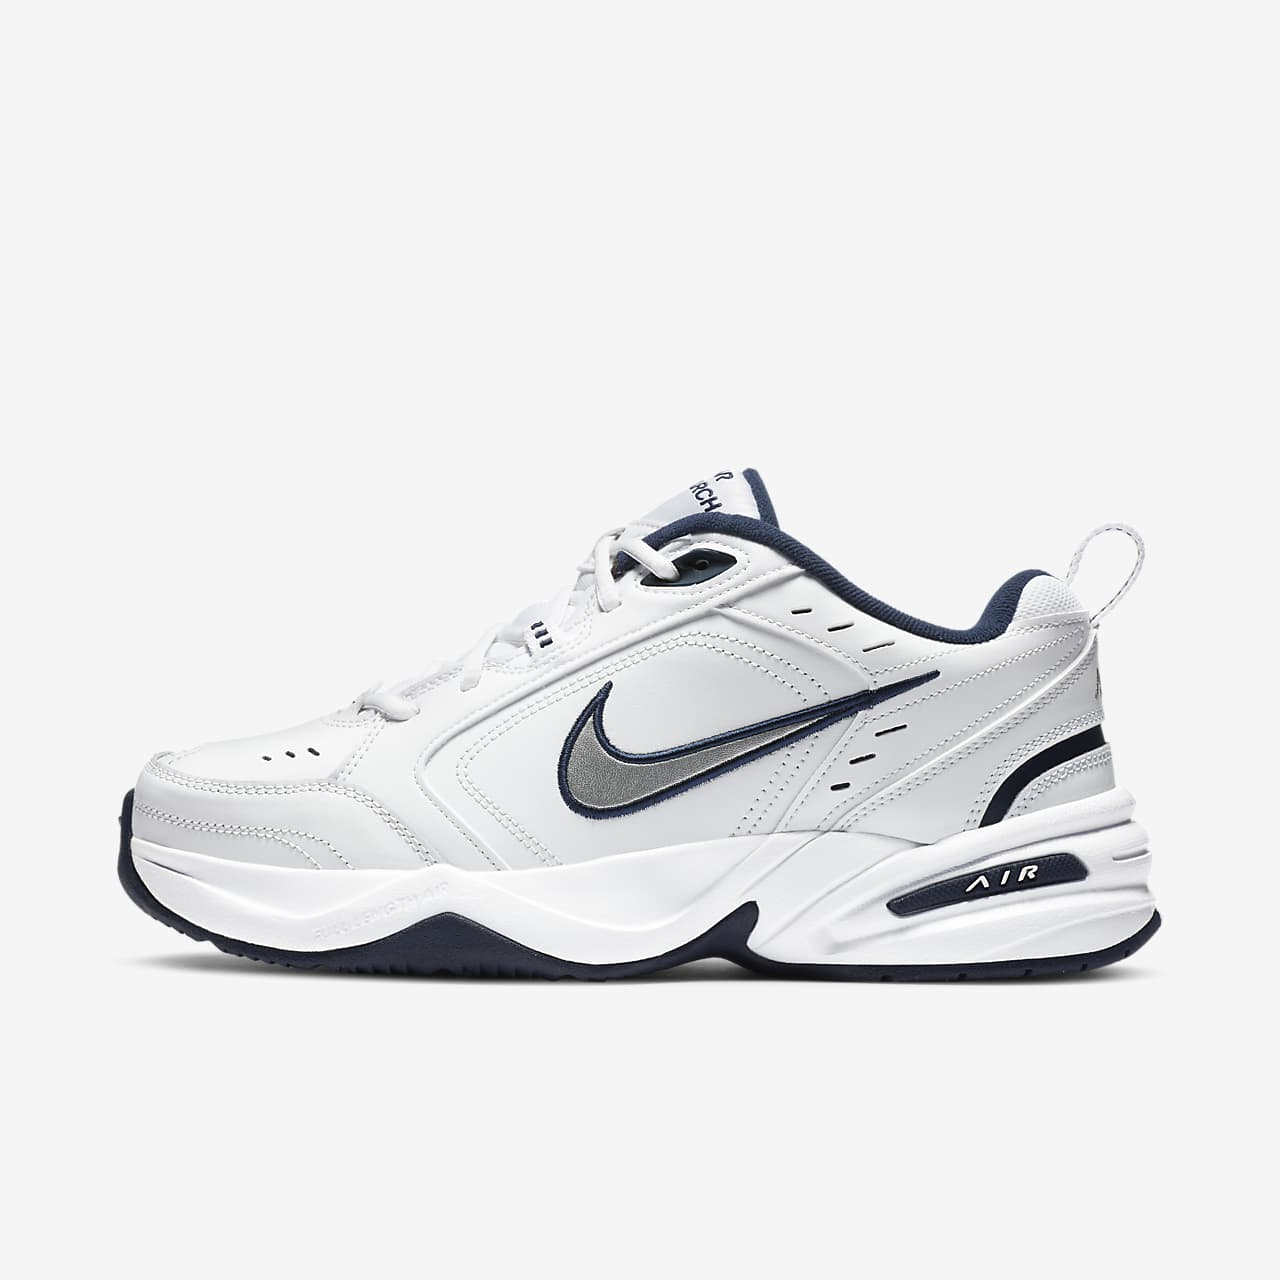 premium selection c96e9 2164a Nike Air Monarch IV